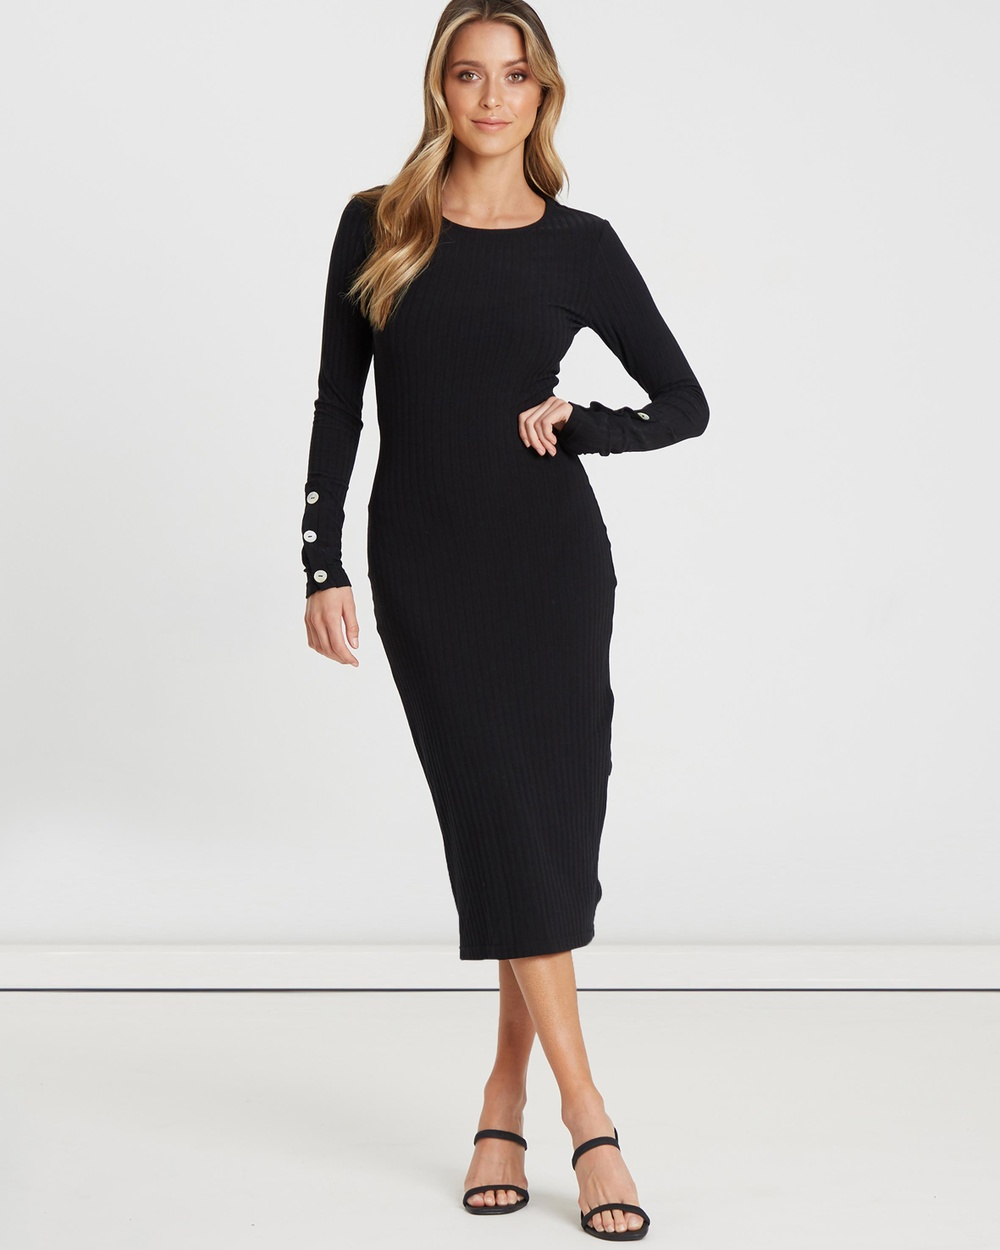 Calli Piper Knit Rib Dress Bodycon Dresses Black Piper Knit Rib Dress